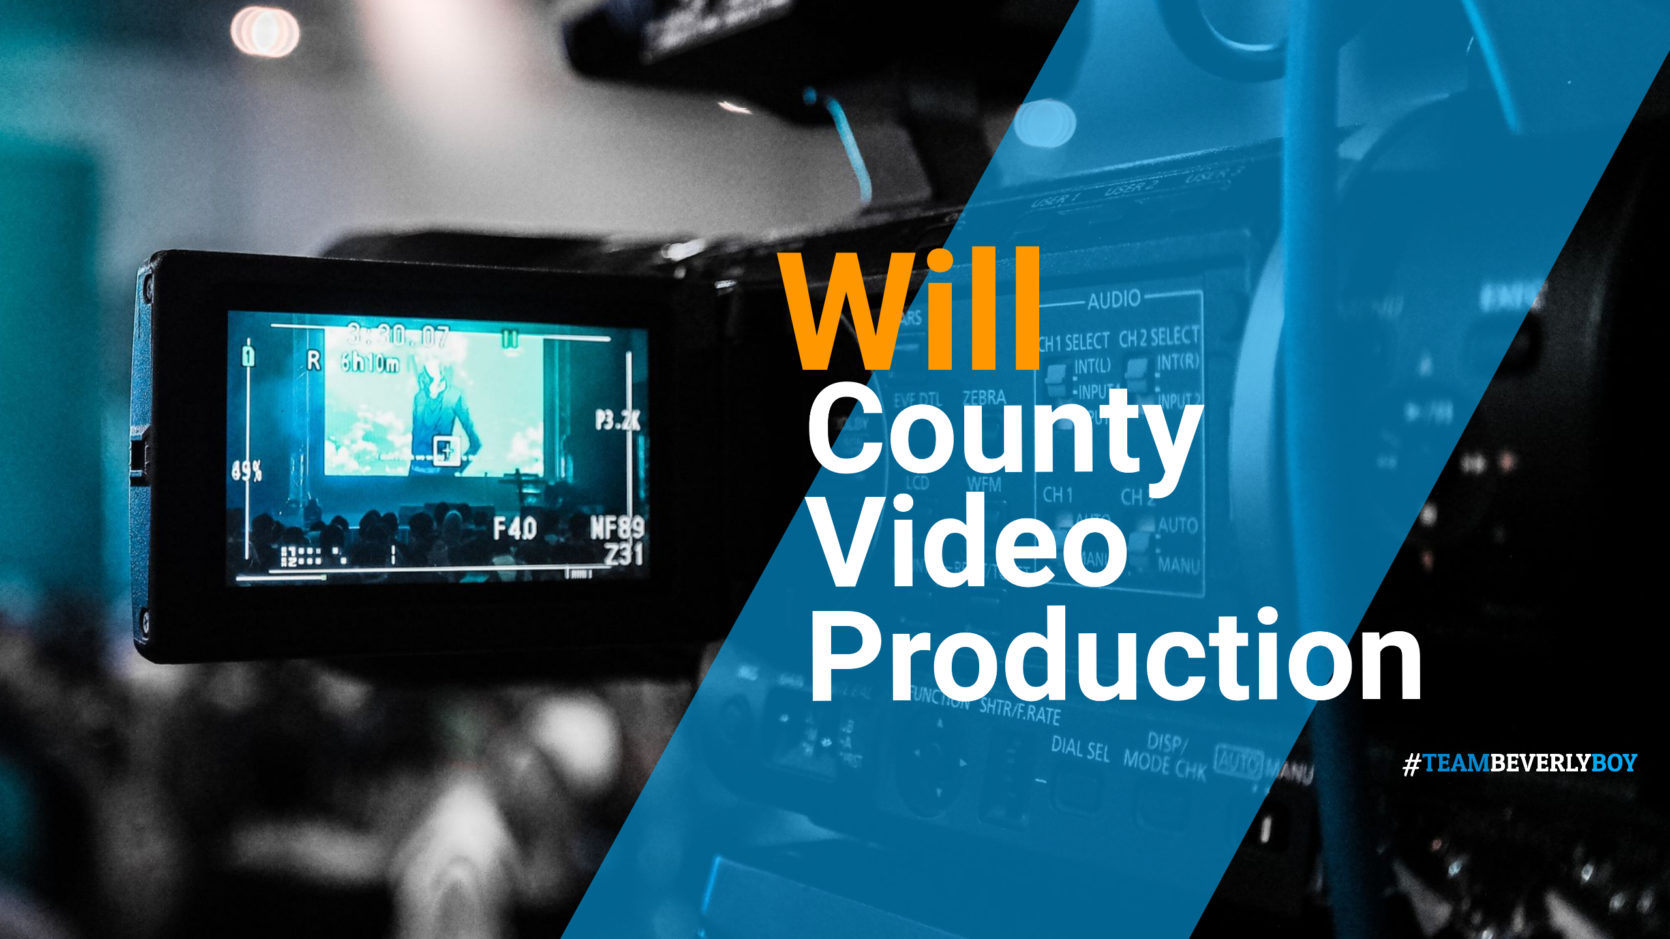 Will County Video Production